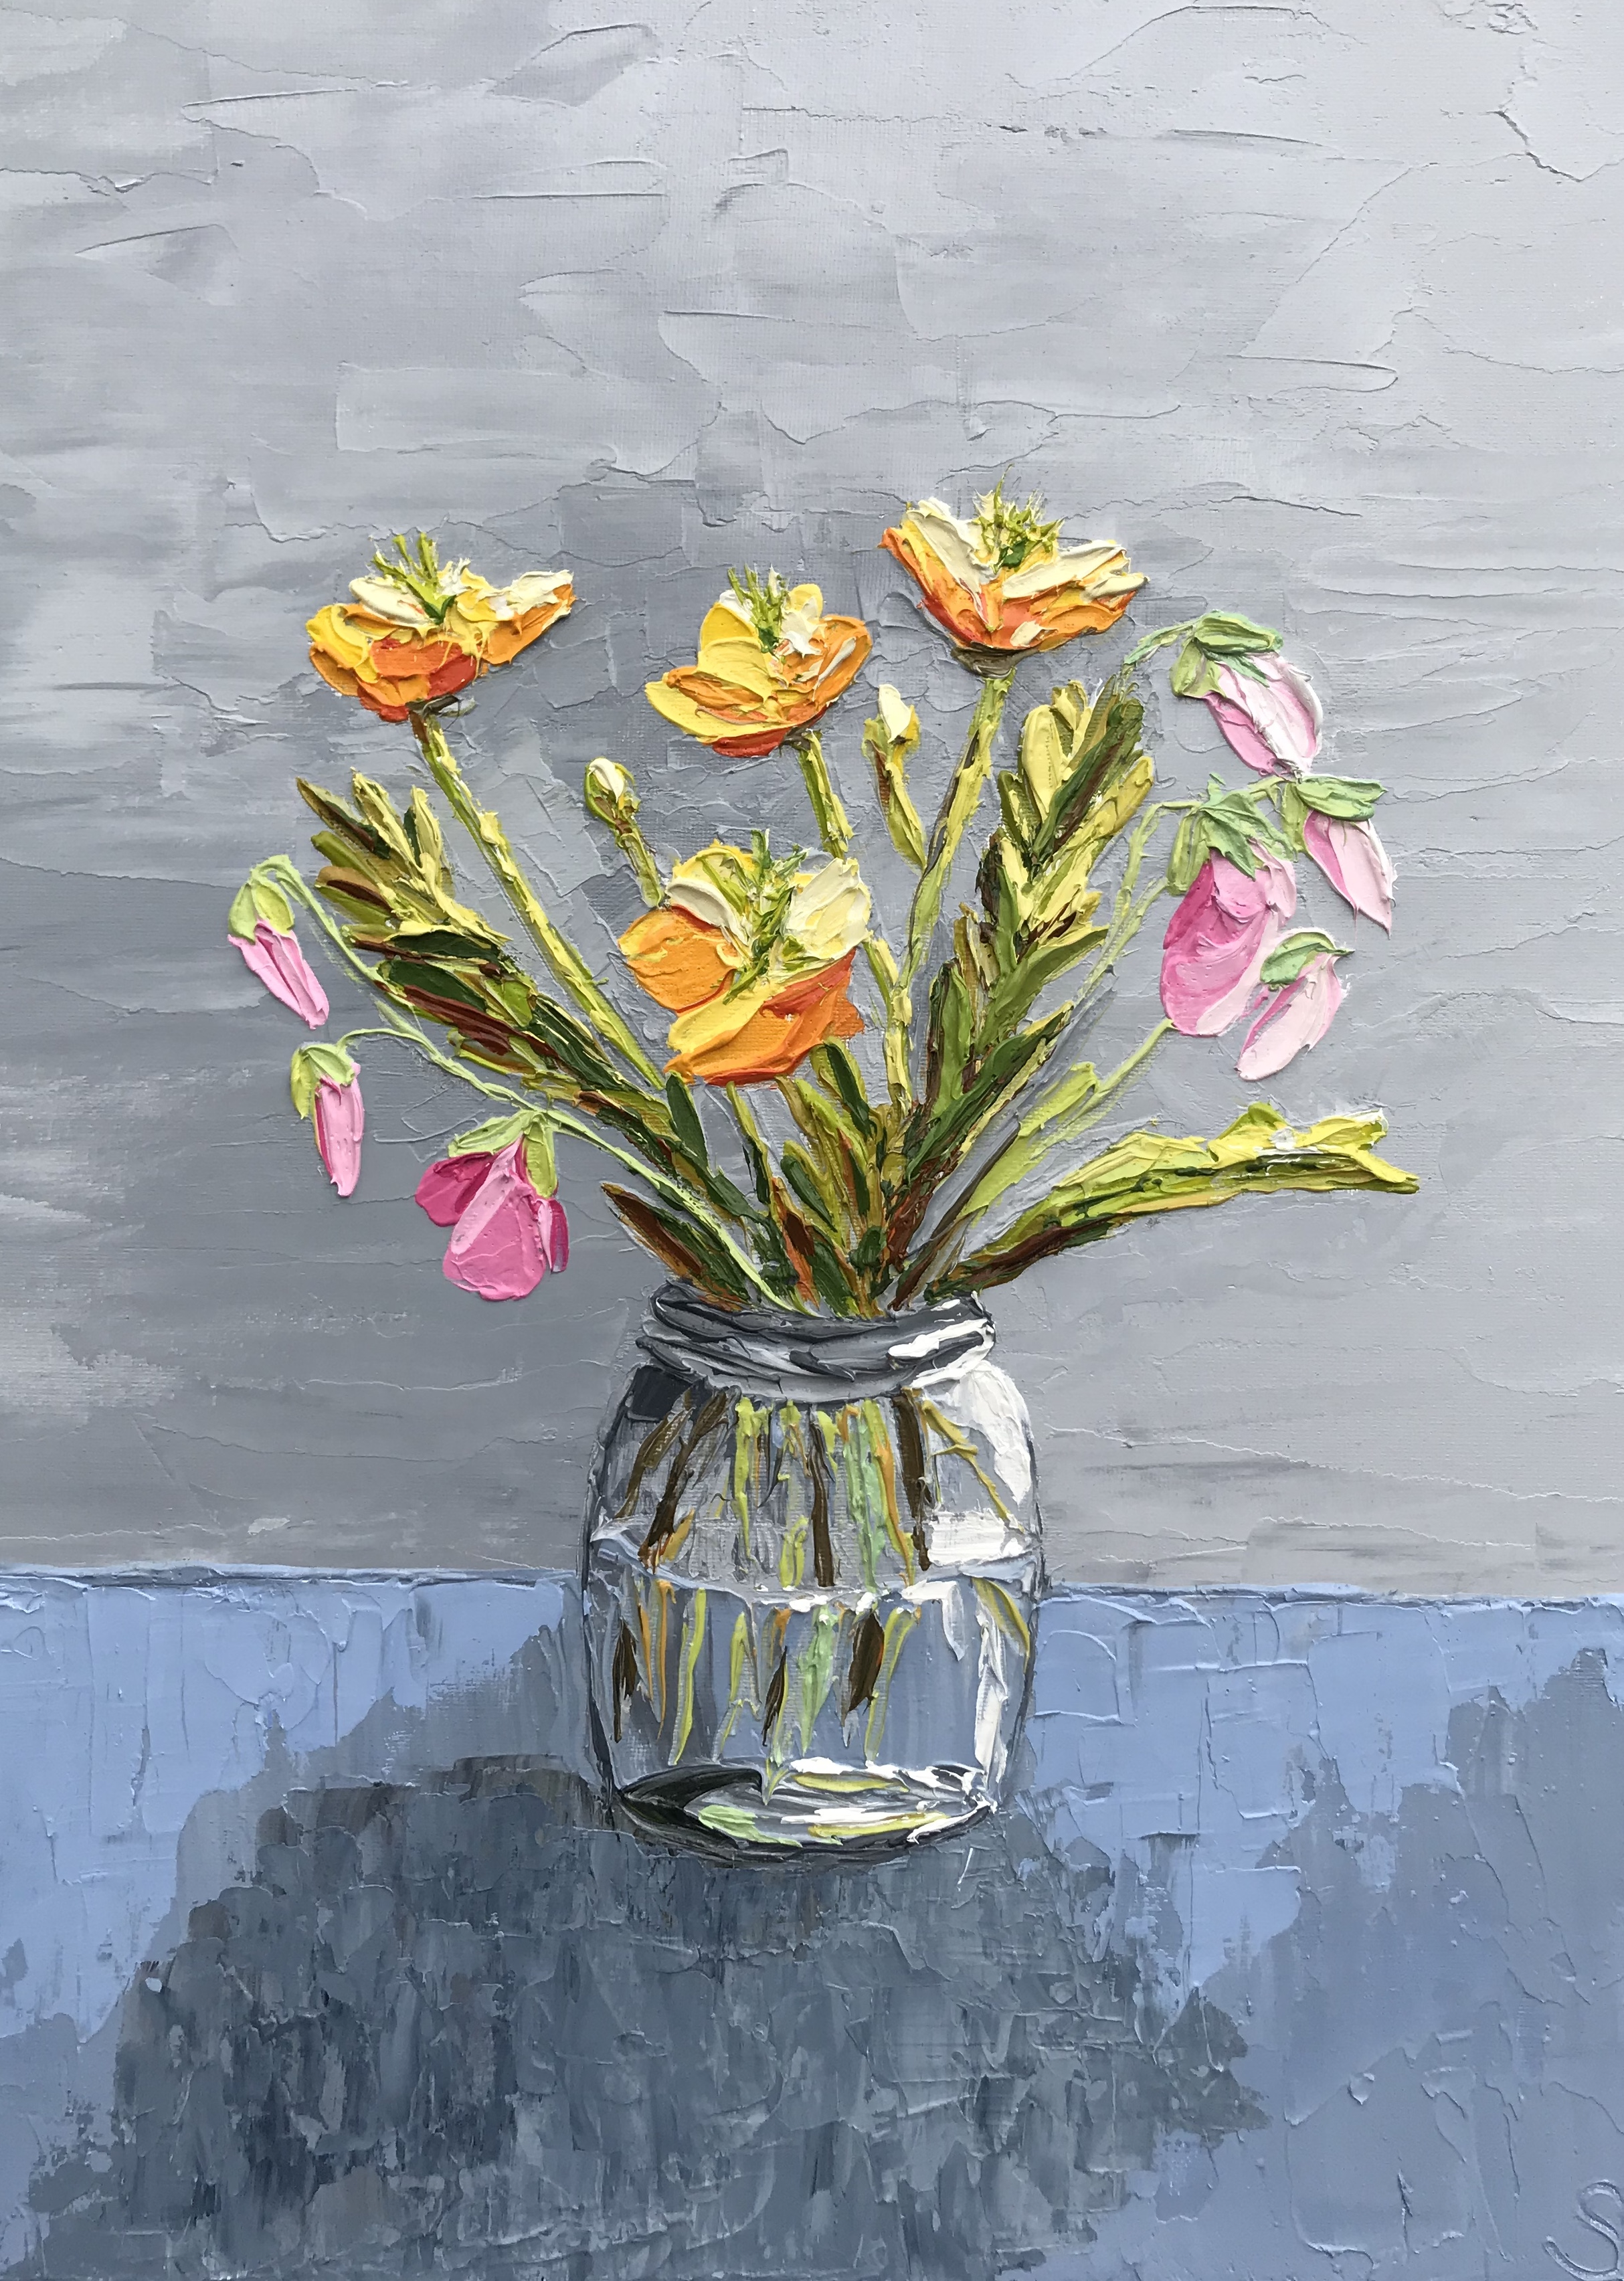 'Flowers in a Jam Jar'